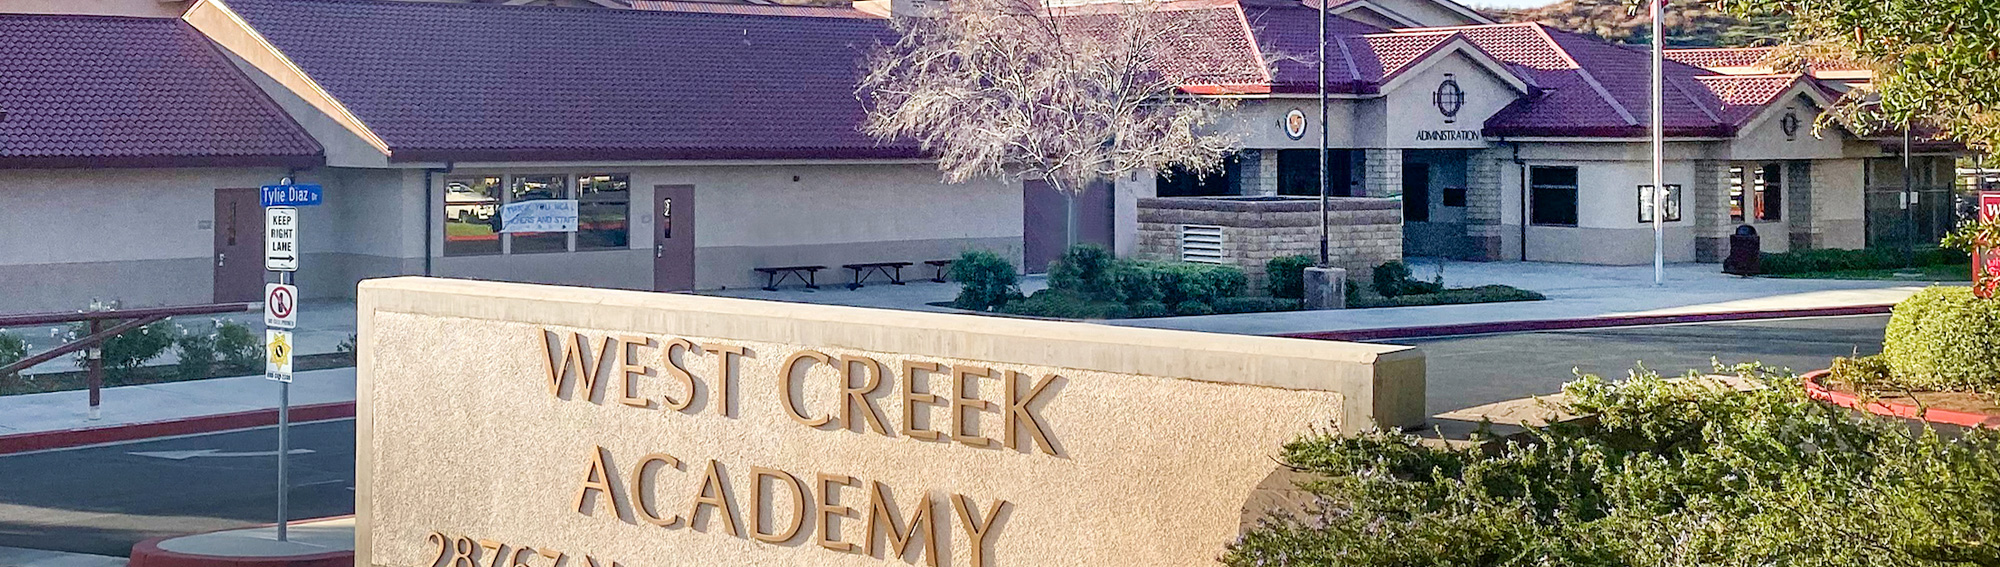 front view of the West Creek Academy